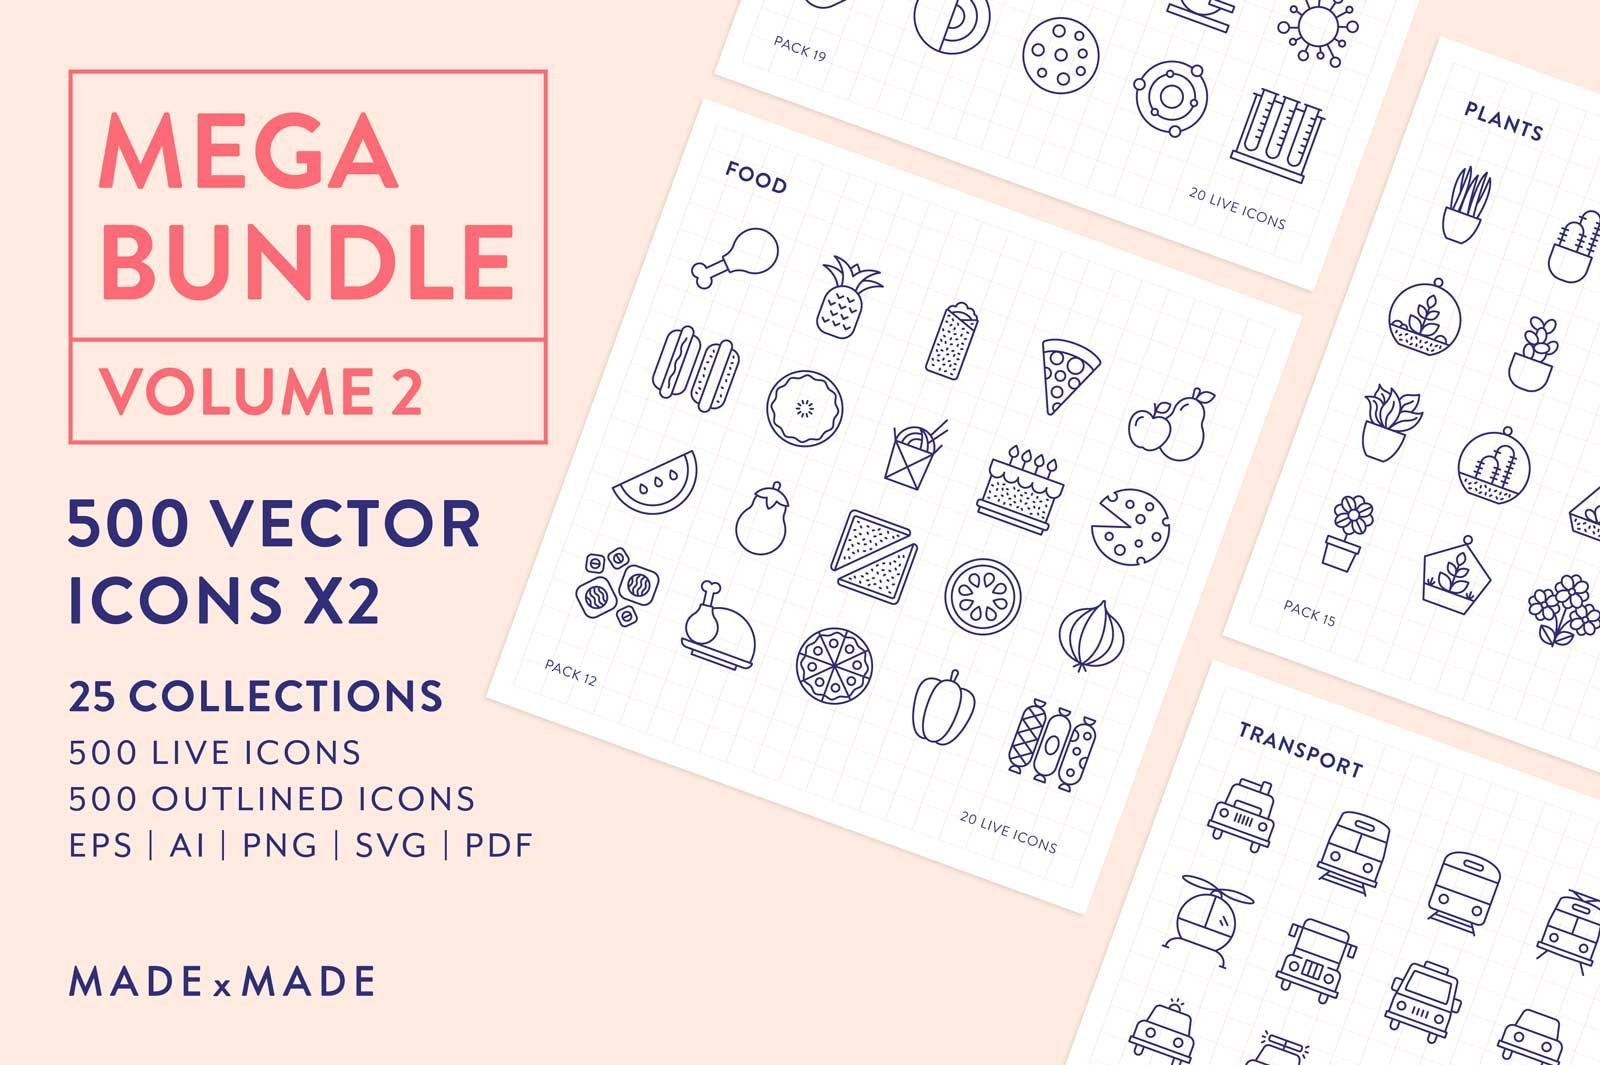 made x made icons mega bundle vol 2